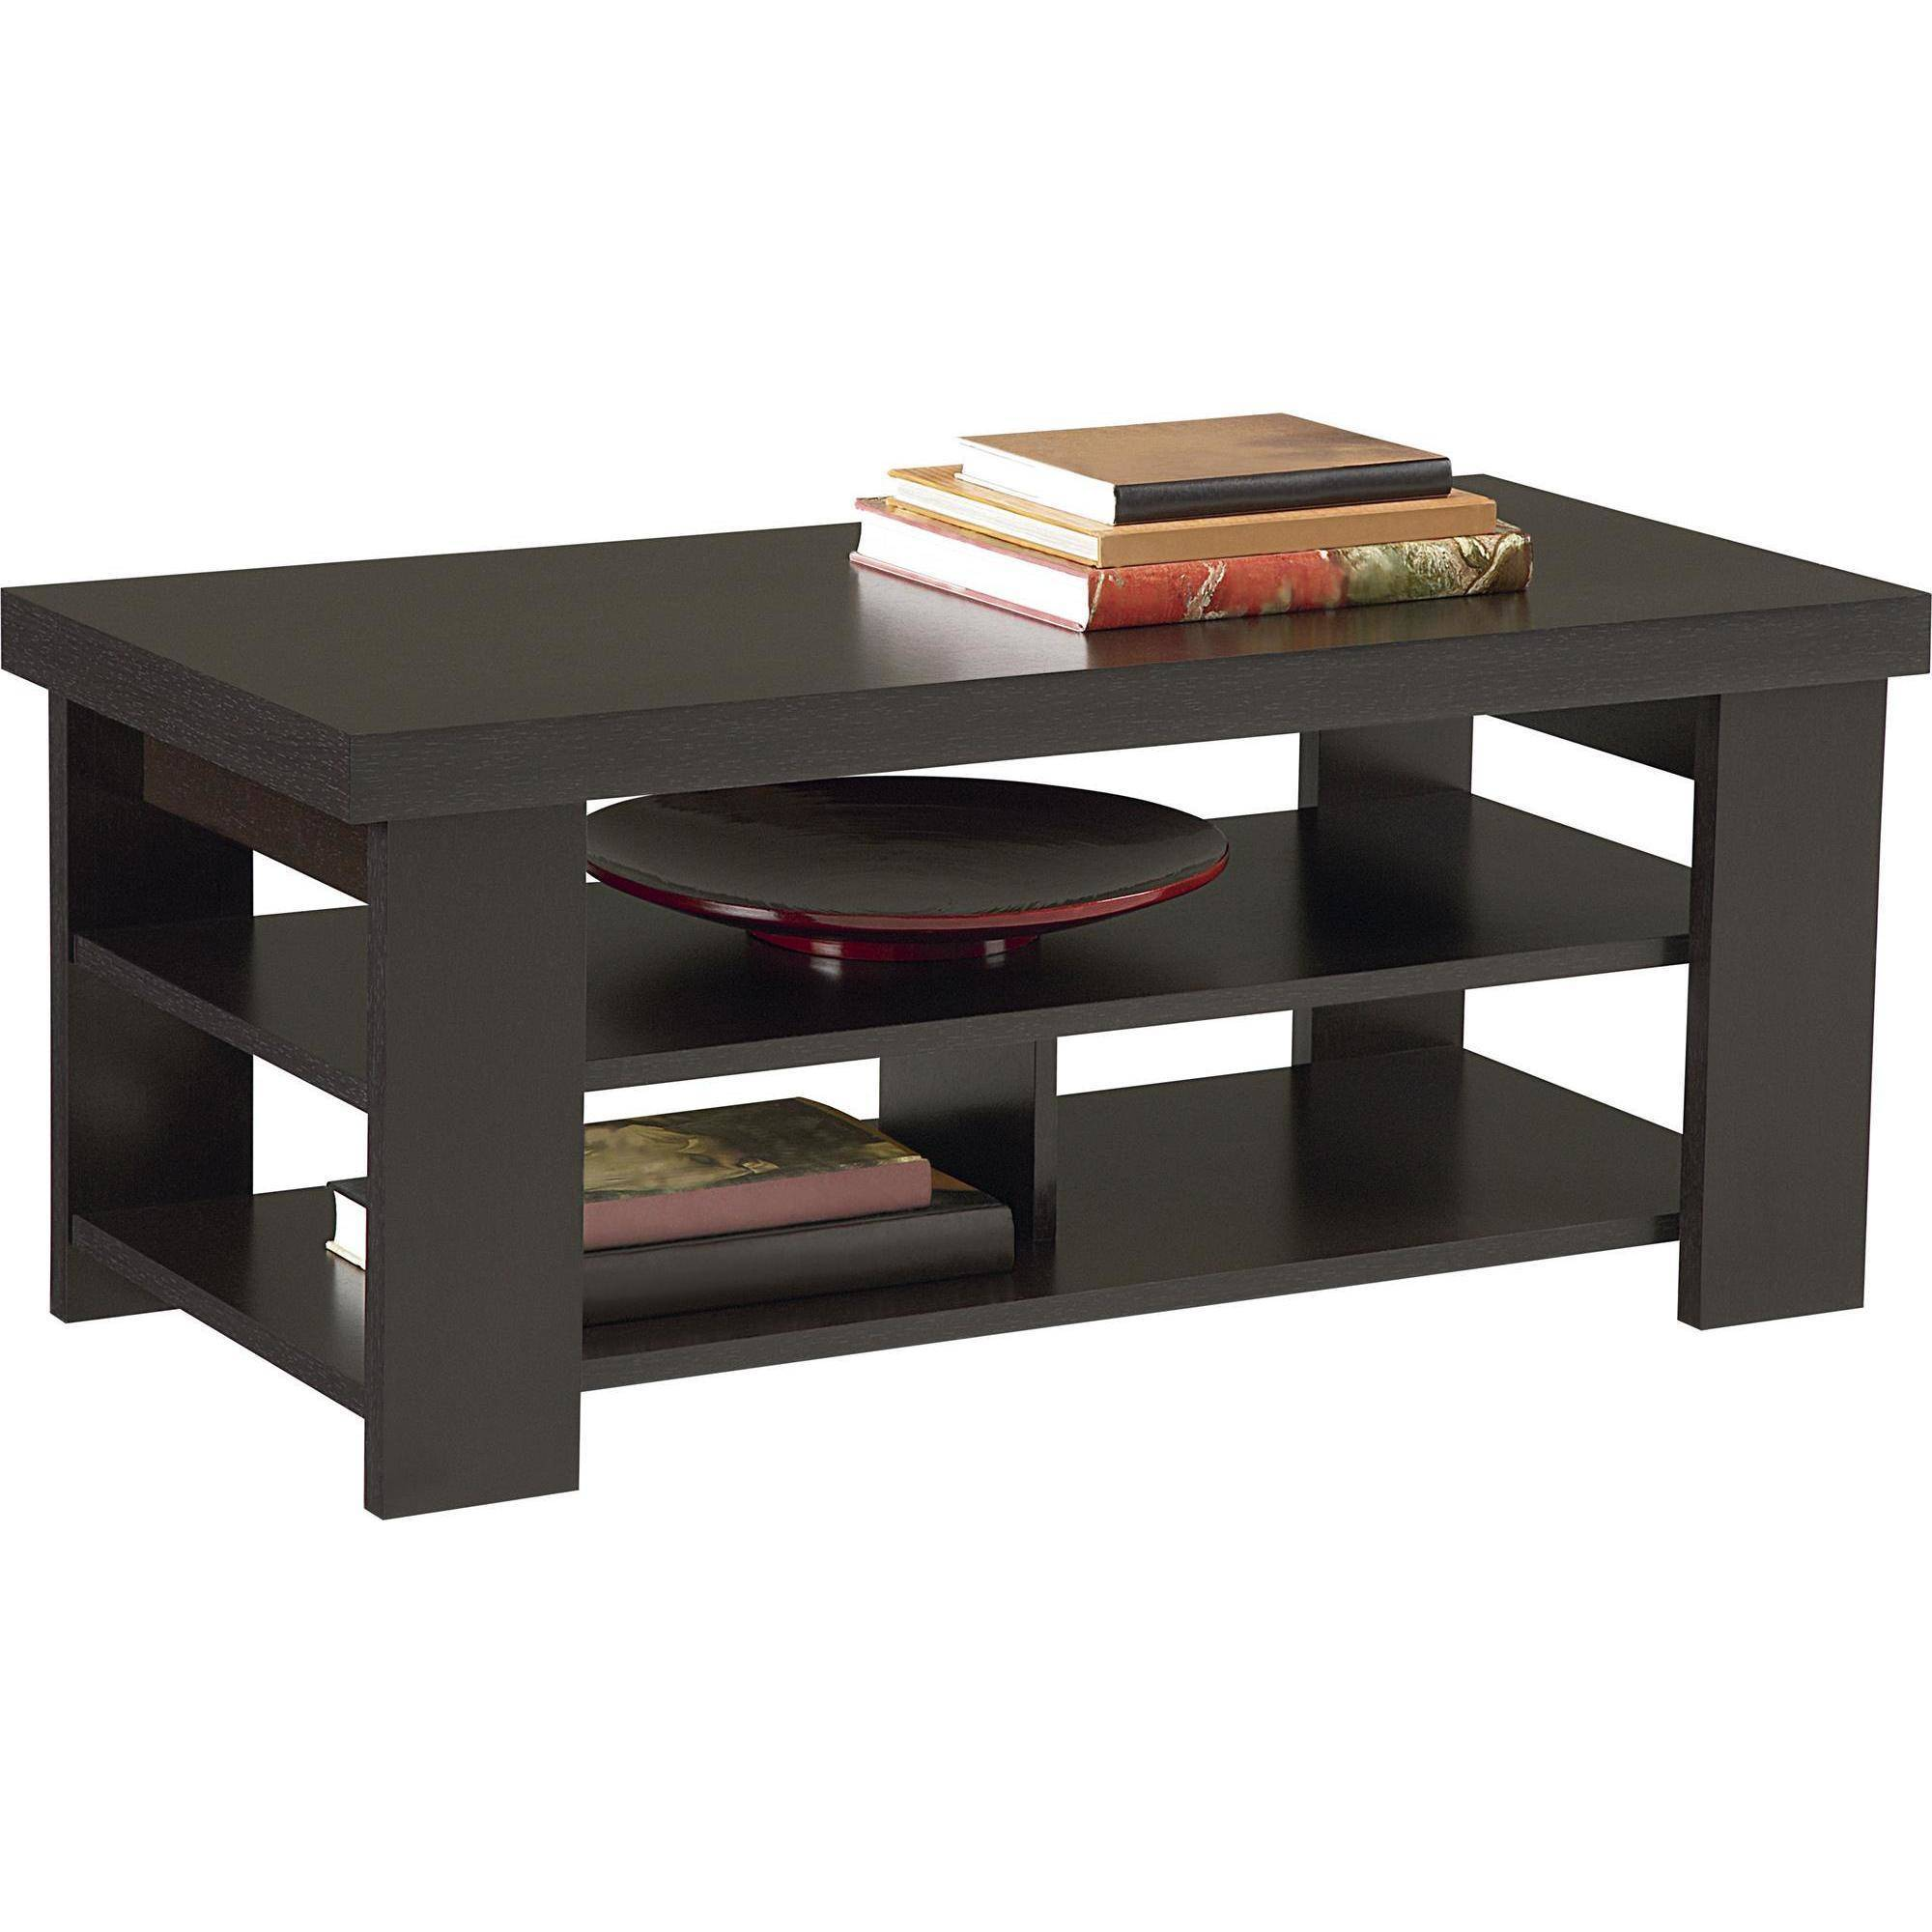 Ameriwood Home Jensen Coffee Table, Multiple Colors   Walmart.com